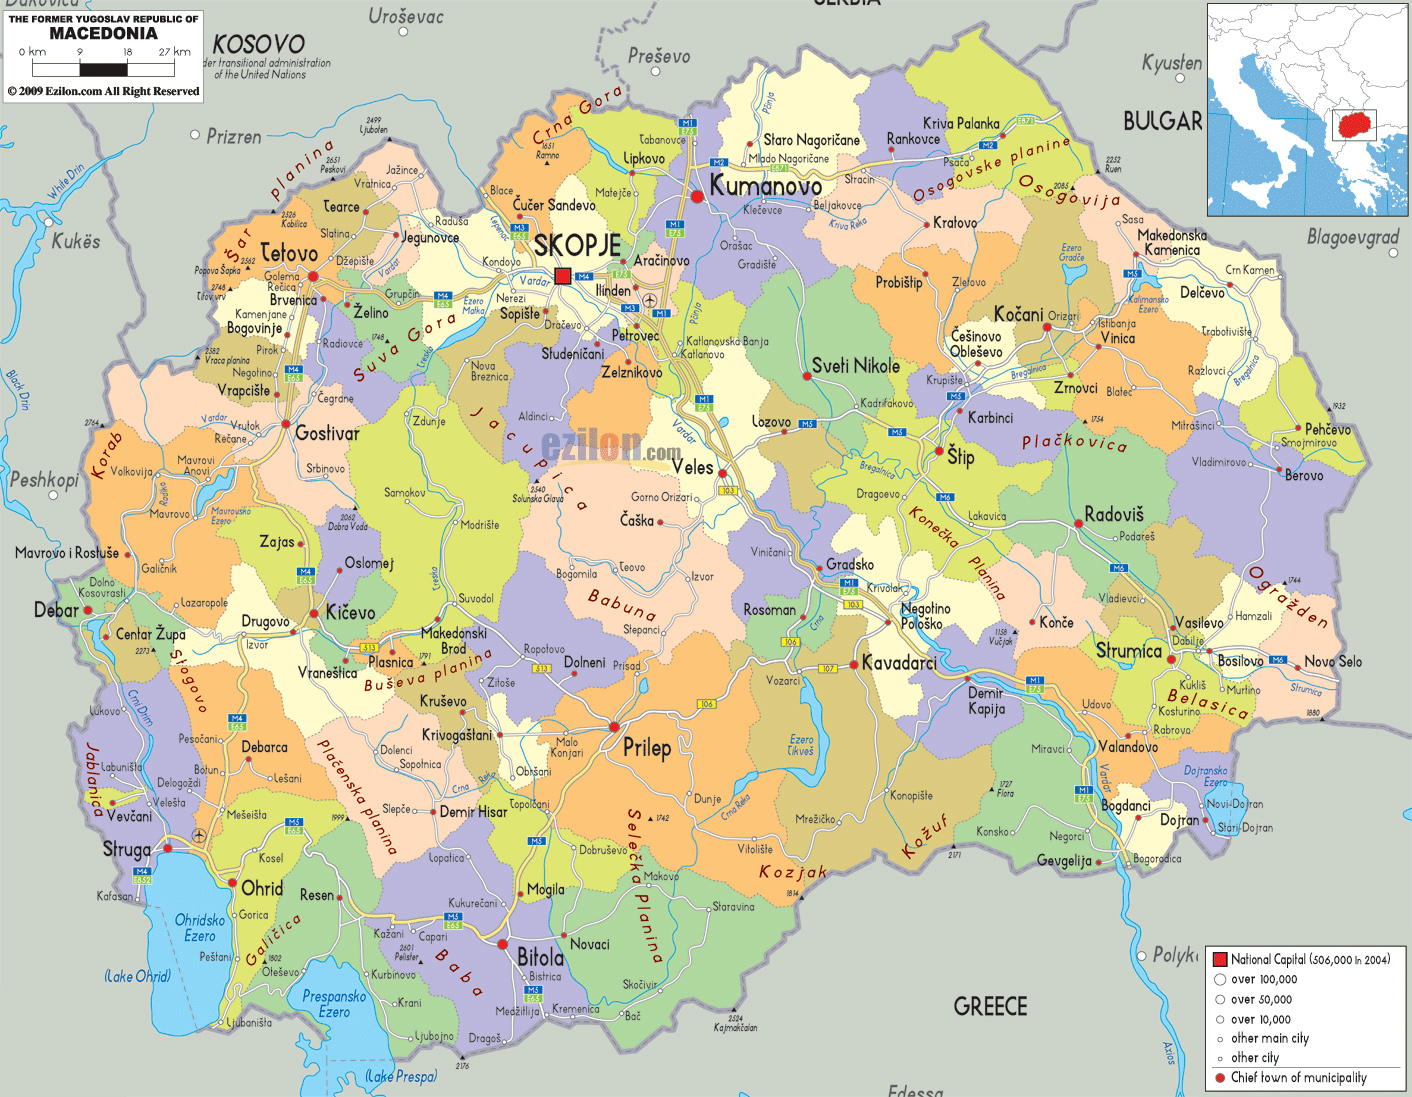 Maps of macedonia detailed map of macedonia in english tourist detailed political and administrative map of macedonia with roads cities and airports publicscrutiny Image collections